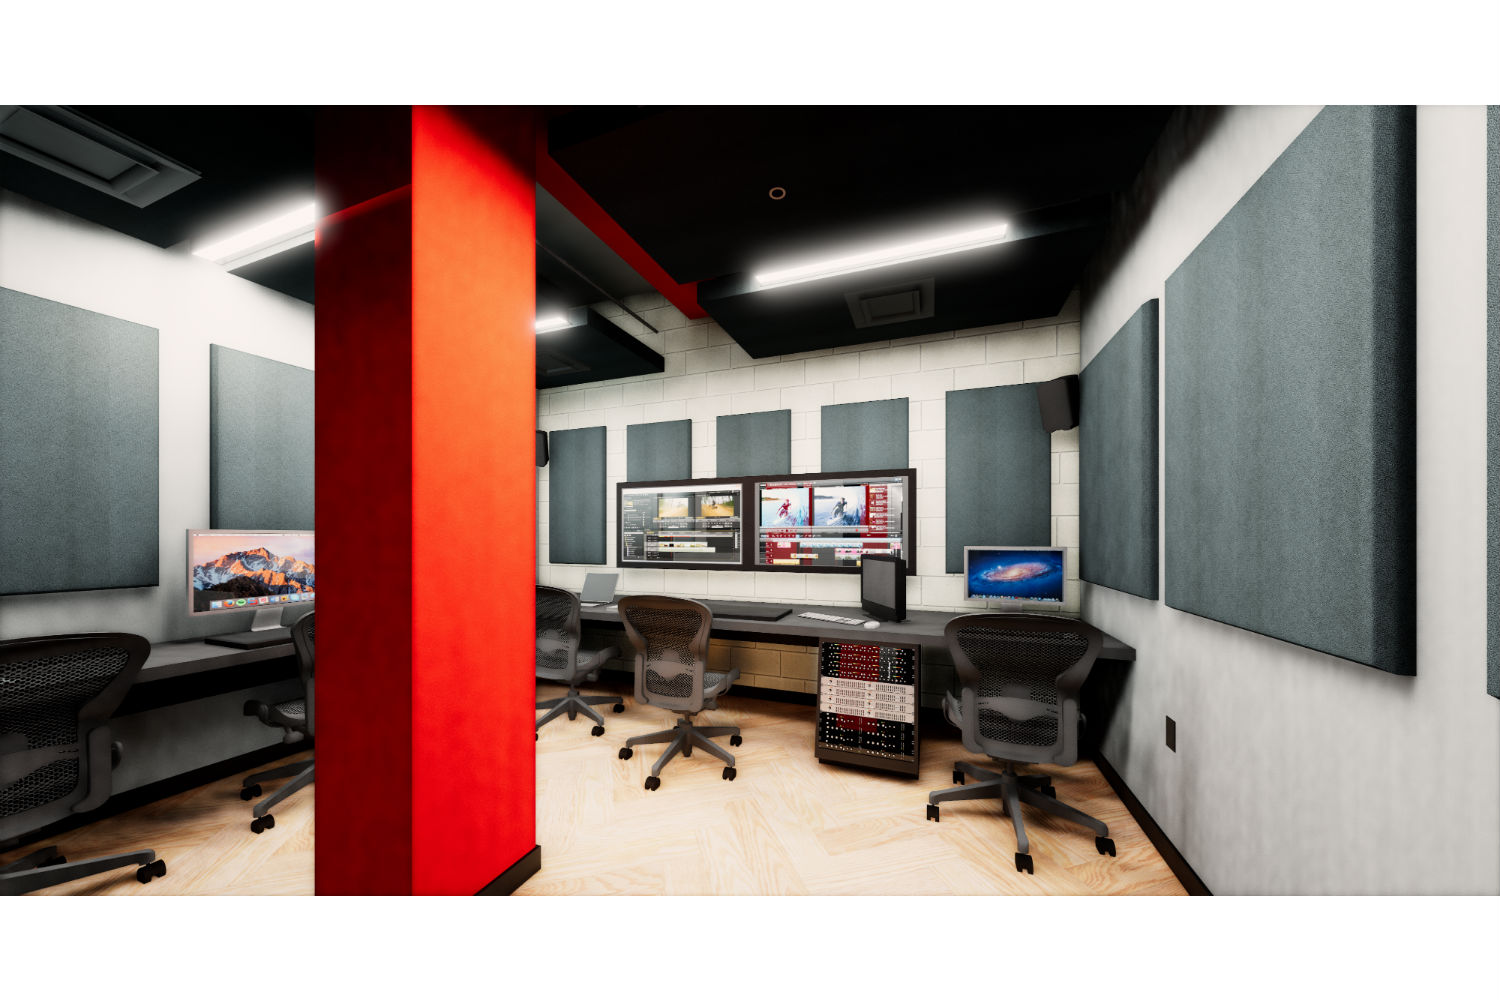 Rensselaer Polytechnic Institute (RPI) brand new state-of-the-art audio production facilities, designed by WSDG - Production Suites